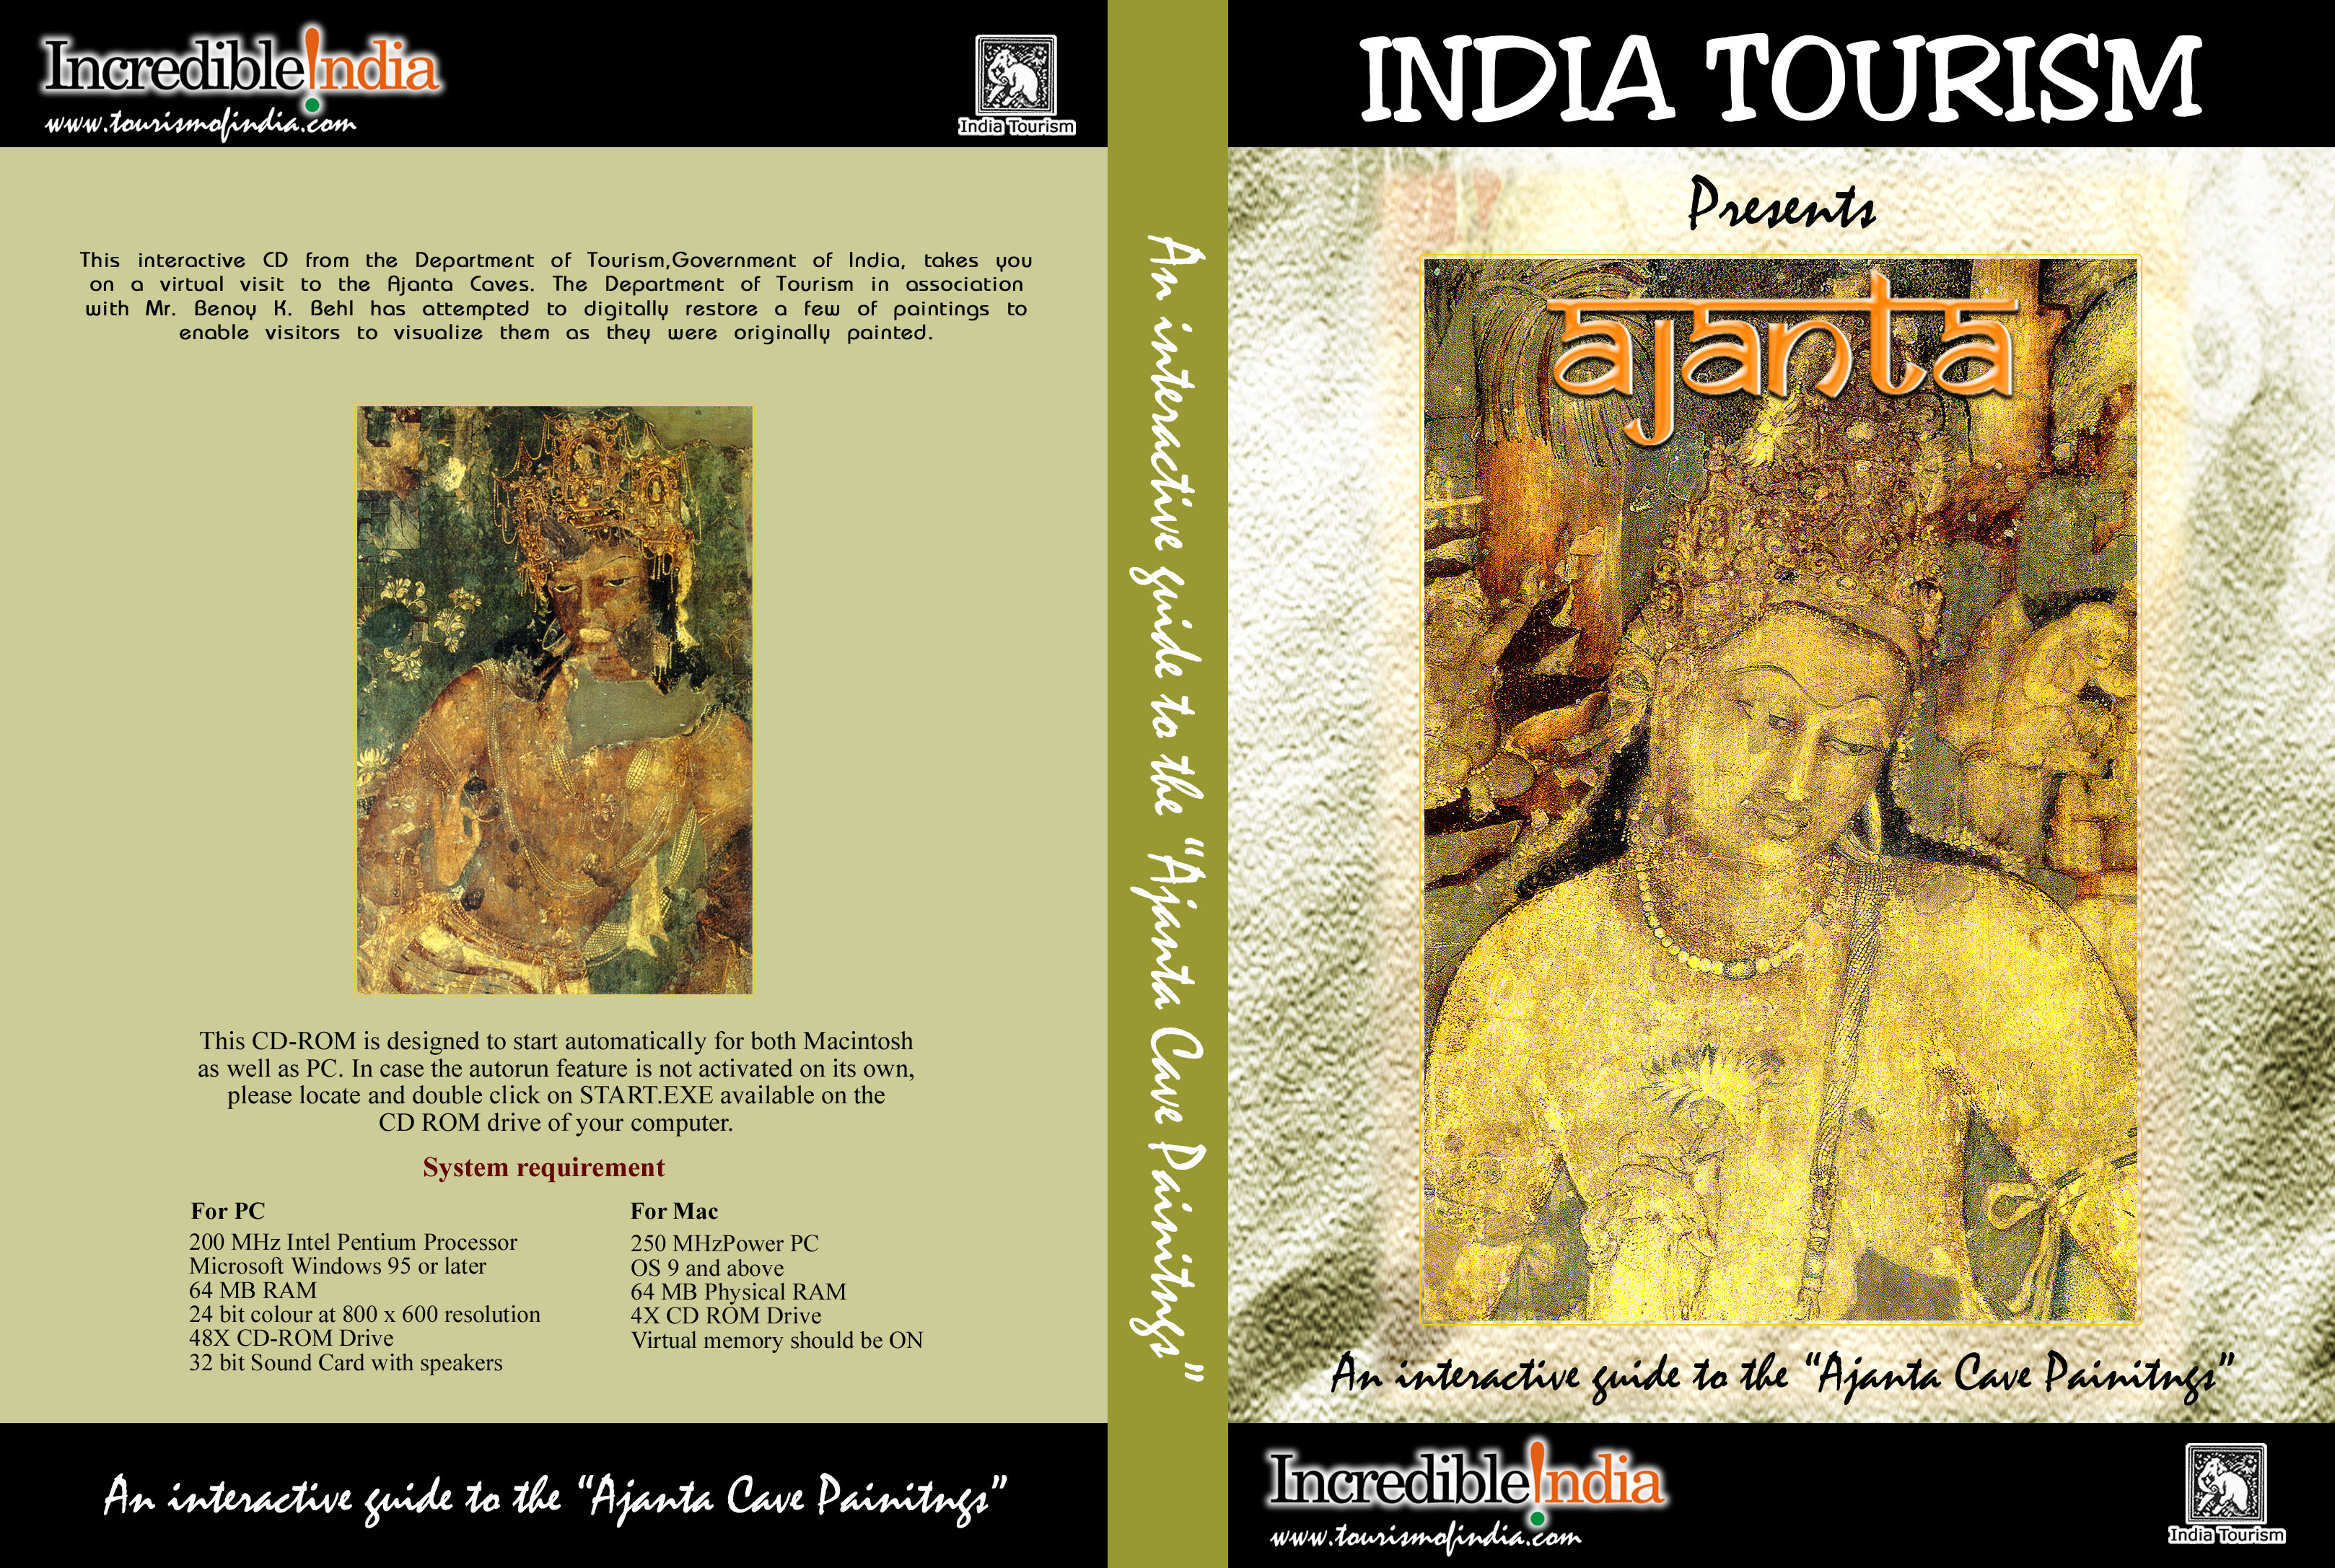 CD ROM for the Department of Tourism Govt of India for the virtual restoration